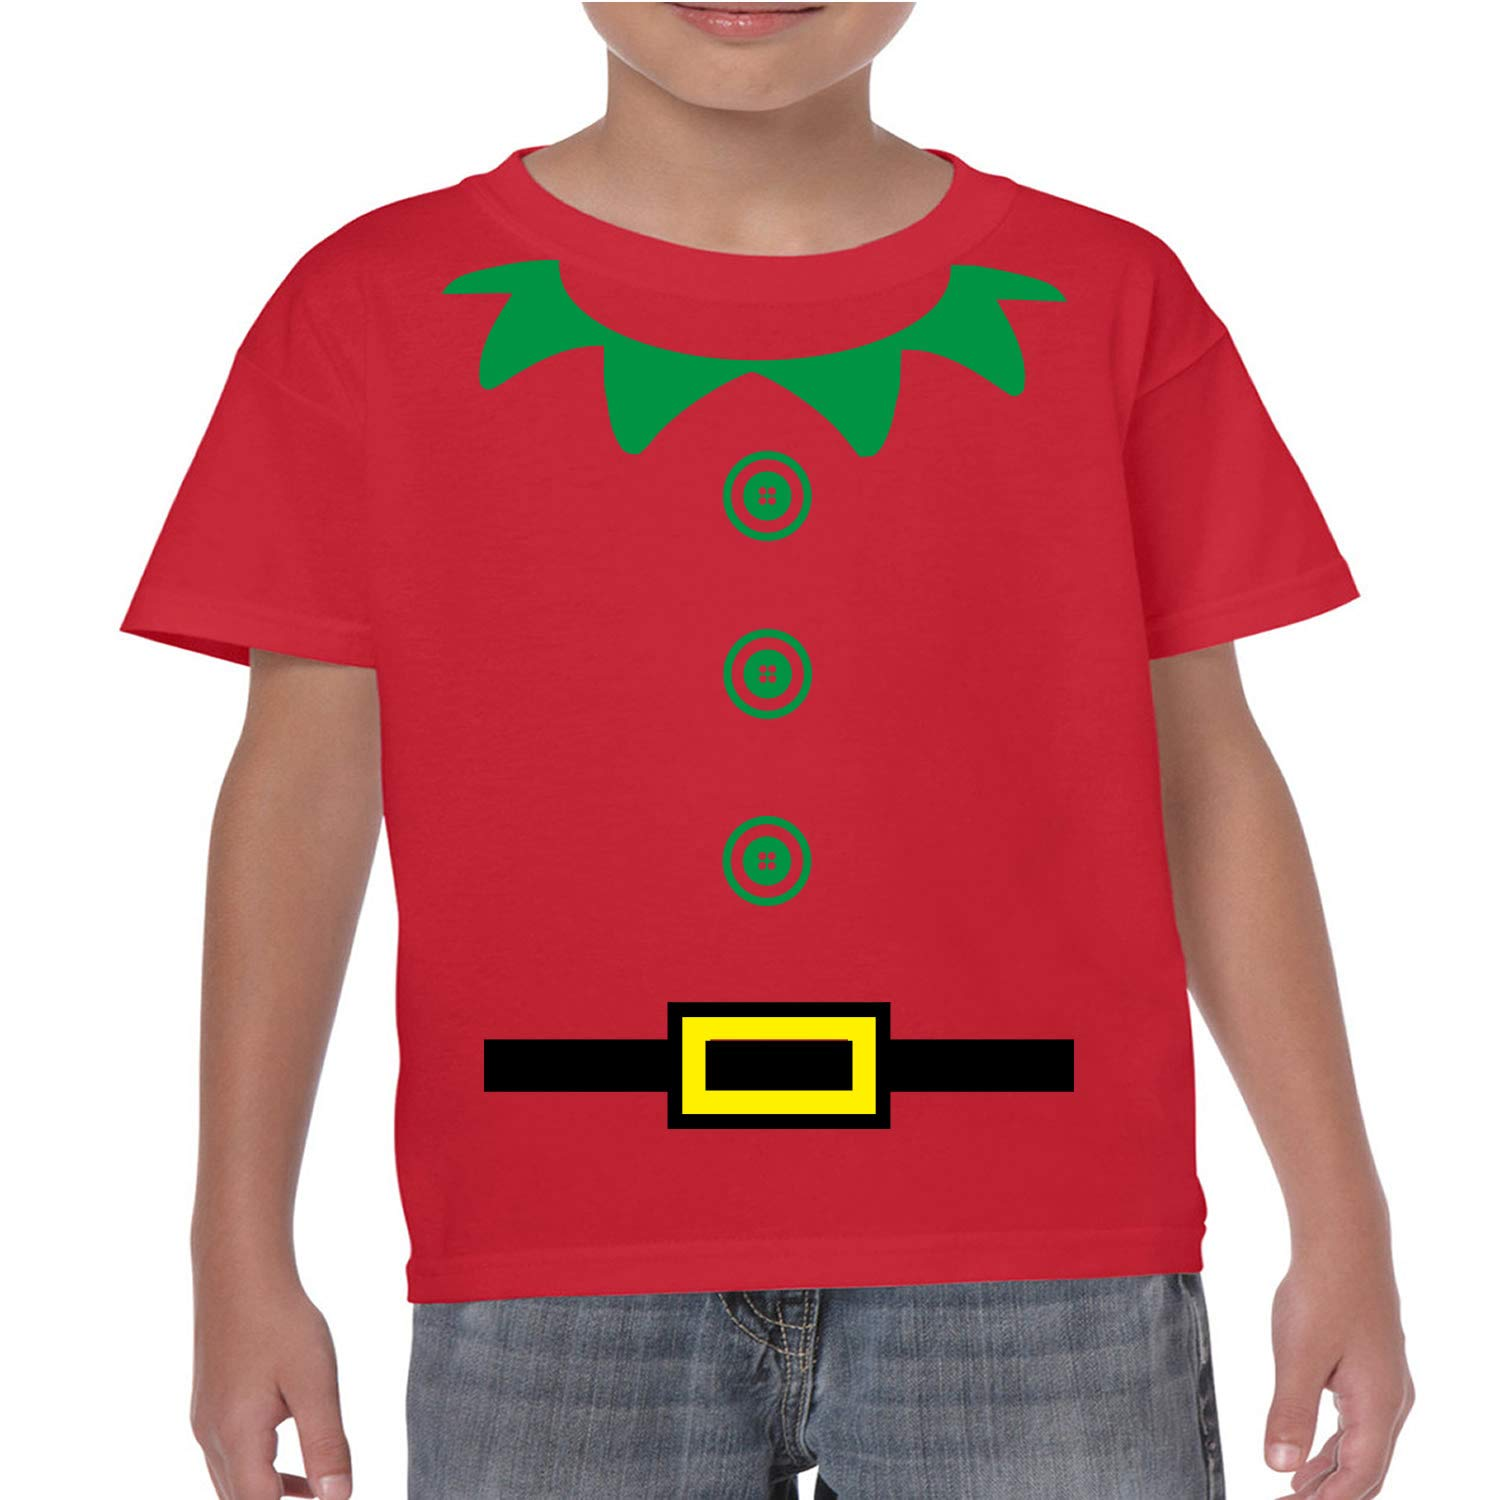 fe9a9725e Christmas Elf Funny Kids T-Shirt / Costume. Childrens Xmas Party Top  ,Present Gift: Amazon.co.uk: Clothing